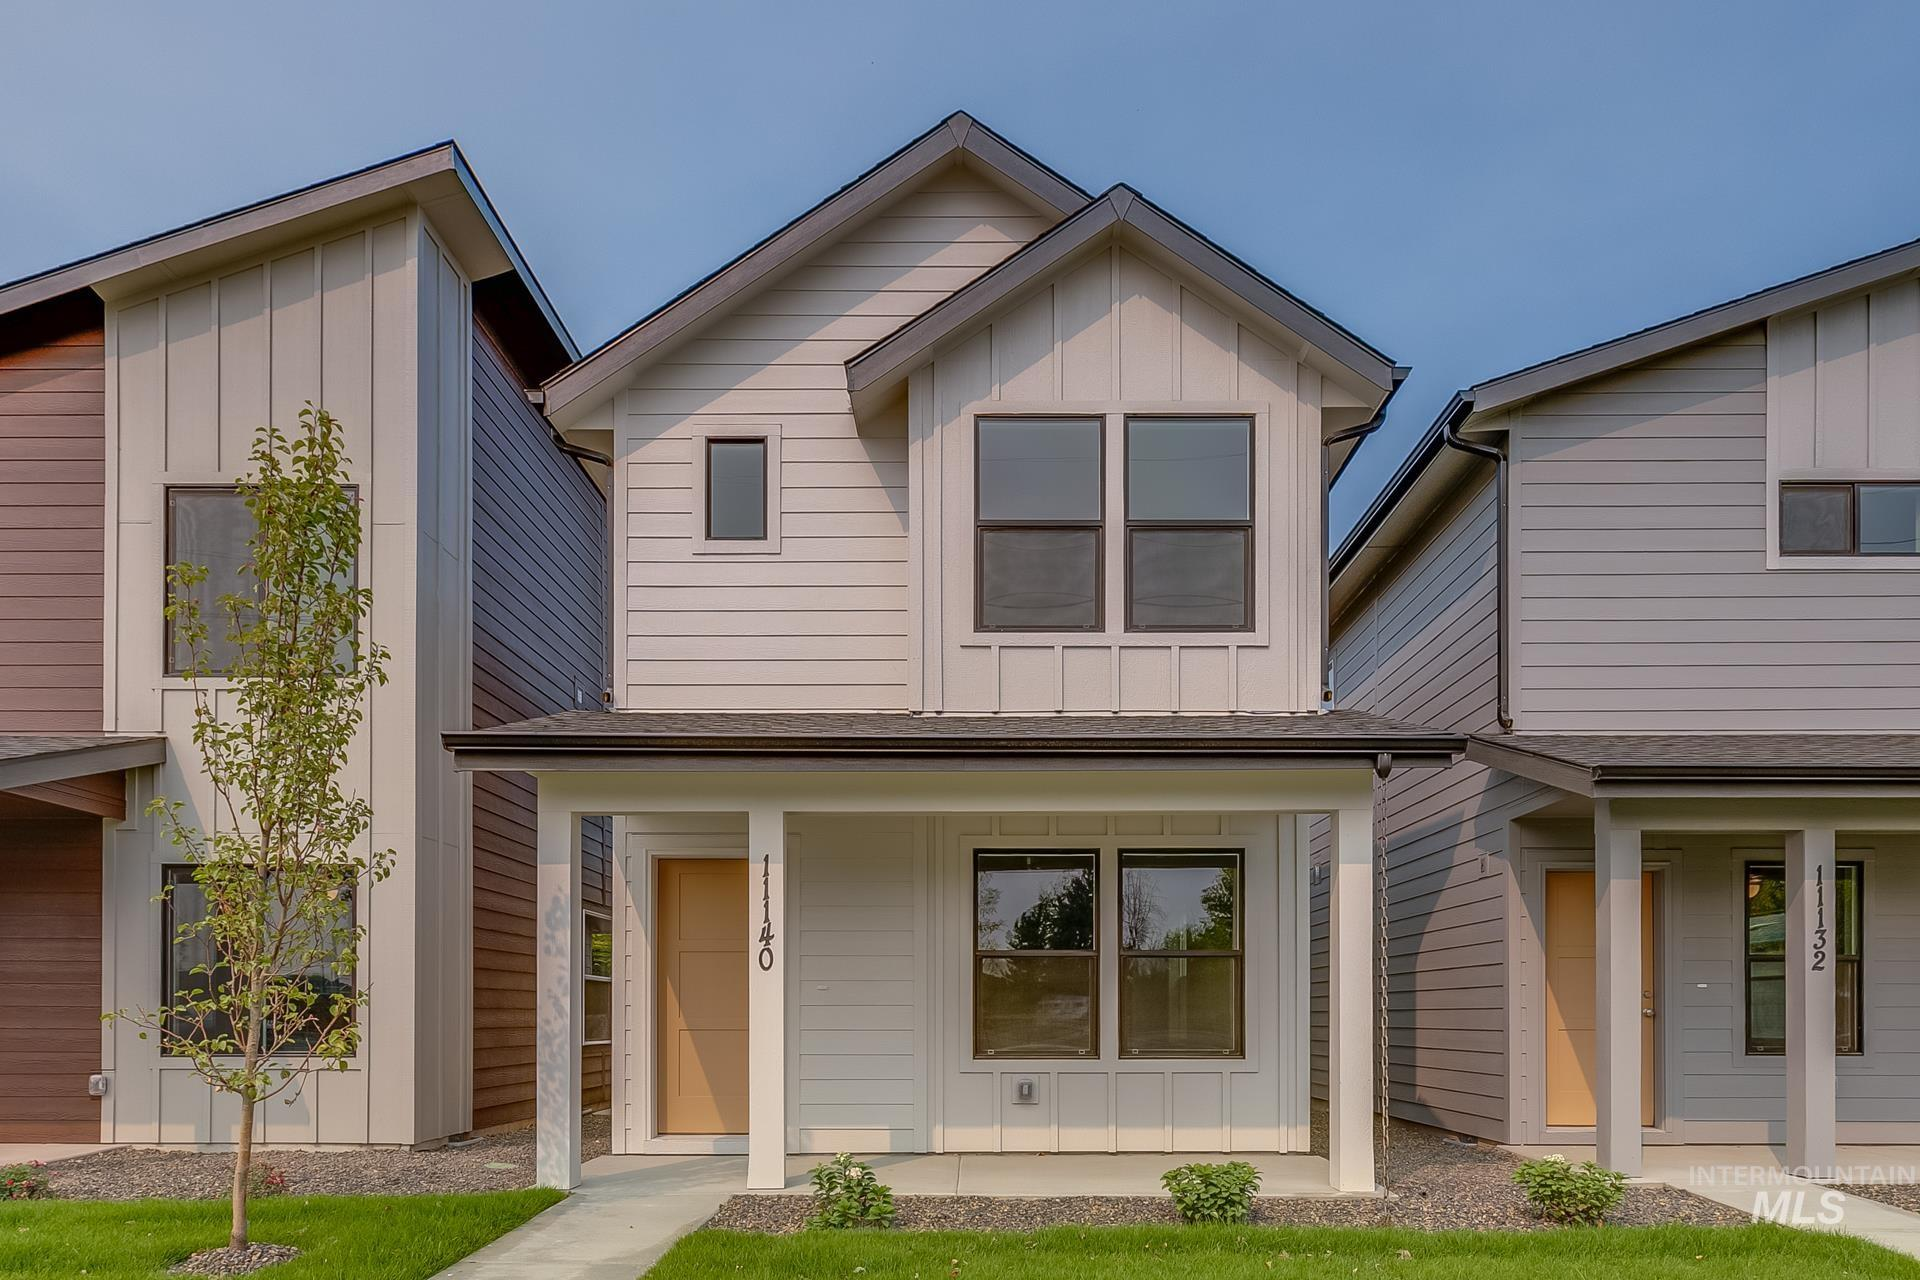 Photo of 11140 Ustick Rd Boise ID 83713-0000